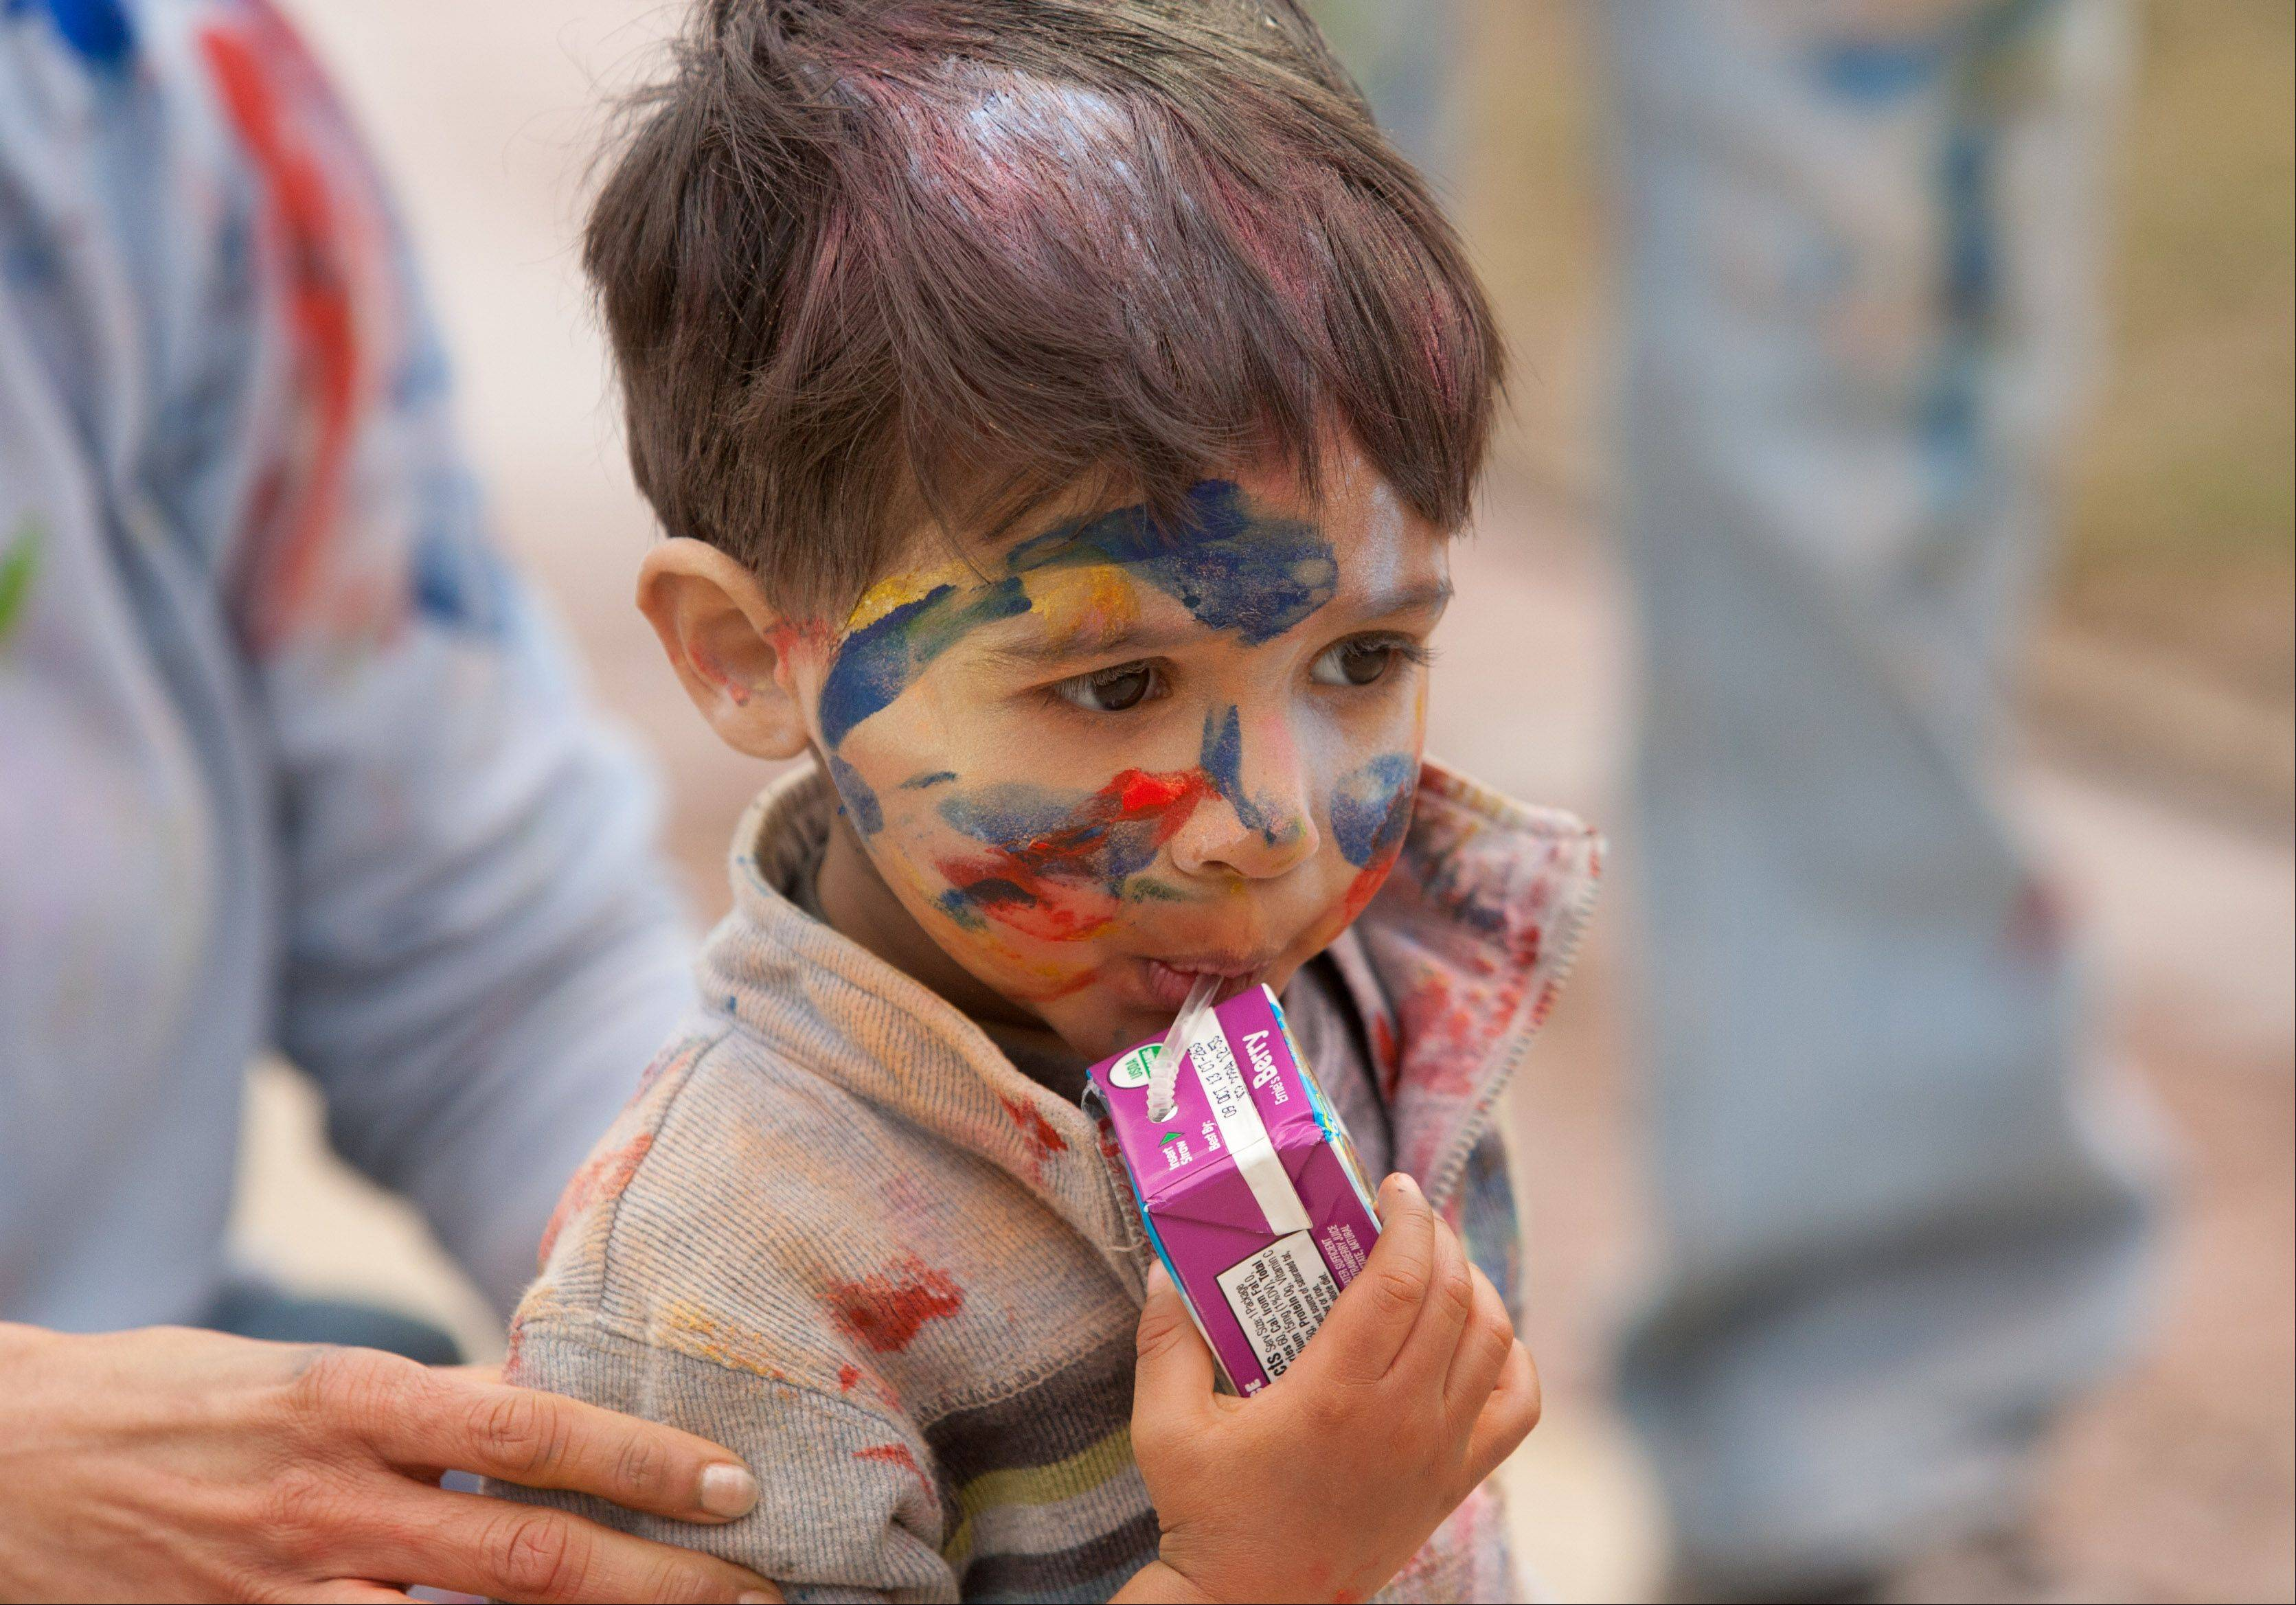 Lokesh Sulkar, 2, of West Chicago, pauses for a drink during the Simply Vedic Cultural Society's celebration of the Festival of Colors, that marks the passing of winter and arrival of spring.